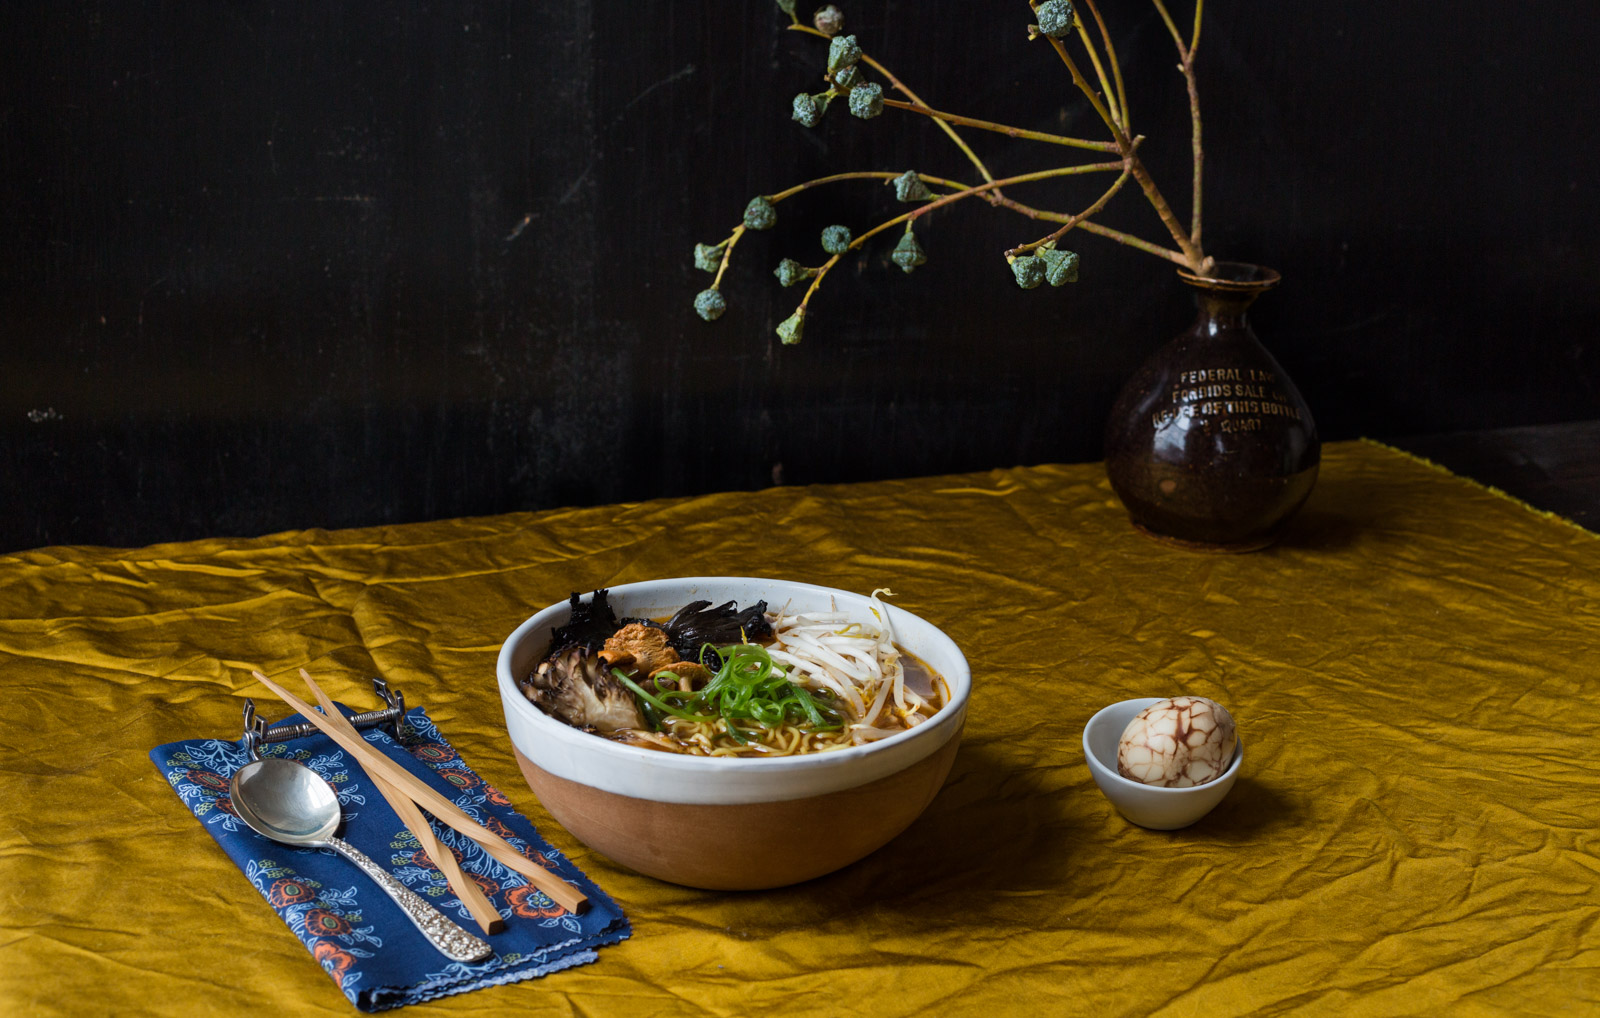 Photo byBurcu Avsar,Prop Styling by Linden Elstran, and Food Styling by Hannah Kirshner.